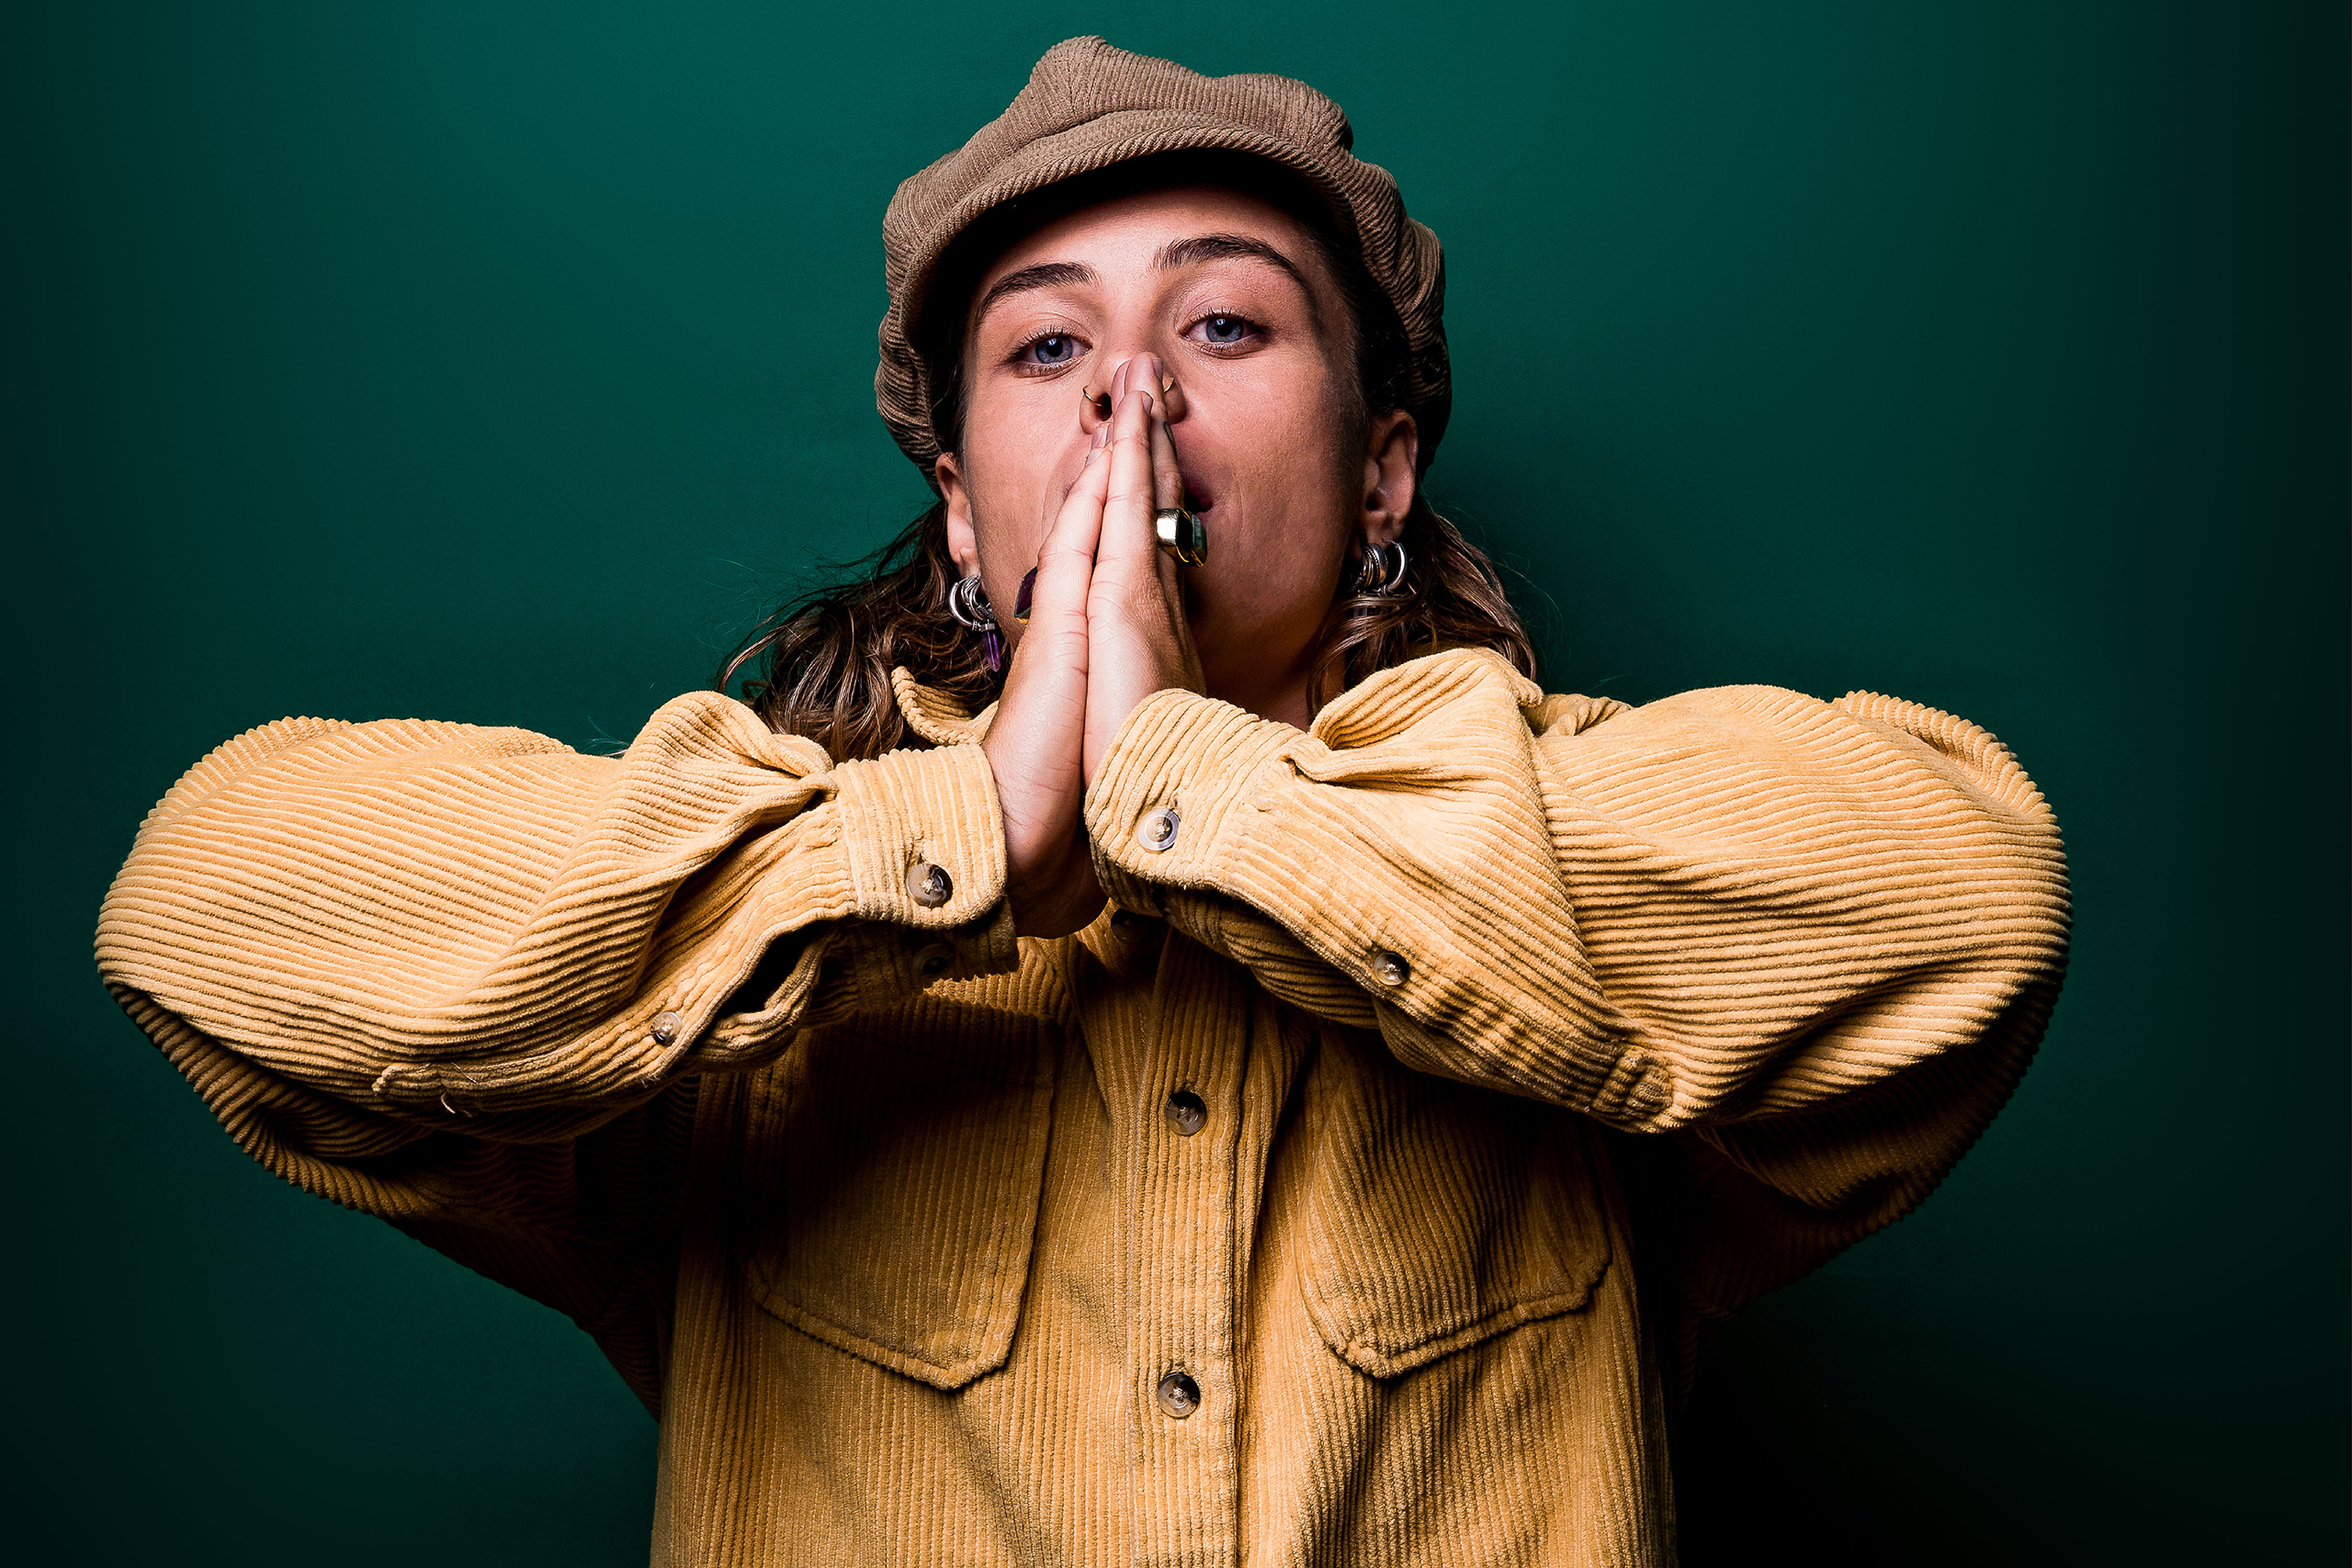 Tash Sultana NME cover interview April 2020